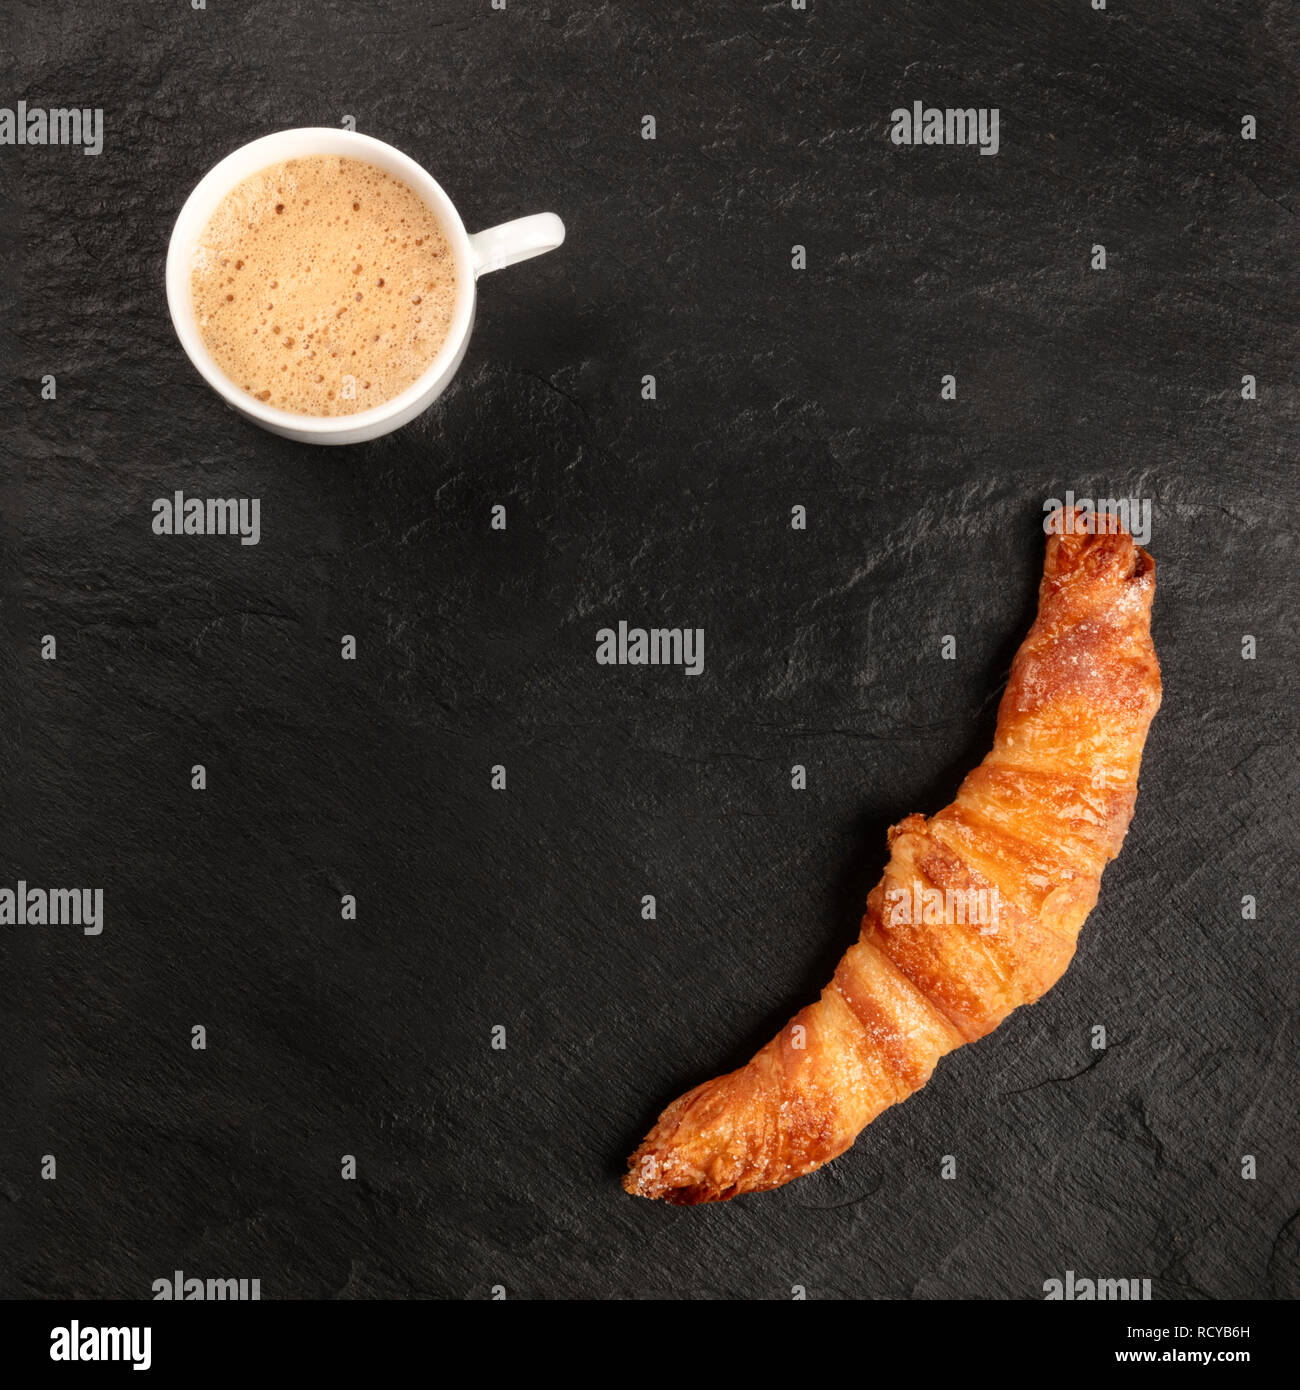 A photo of a croissant with a cup of coffee, shot from the top on a black background, forming a frame for copy space - Stock Image